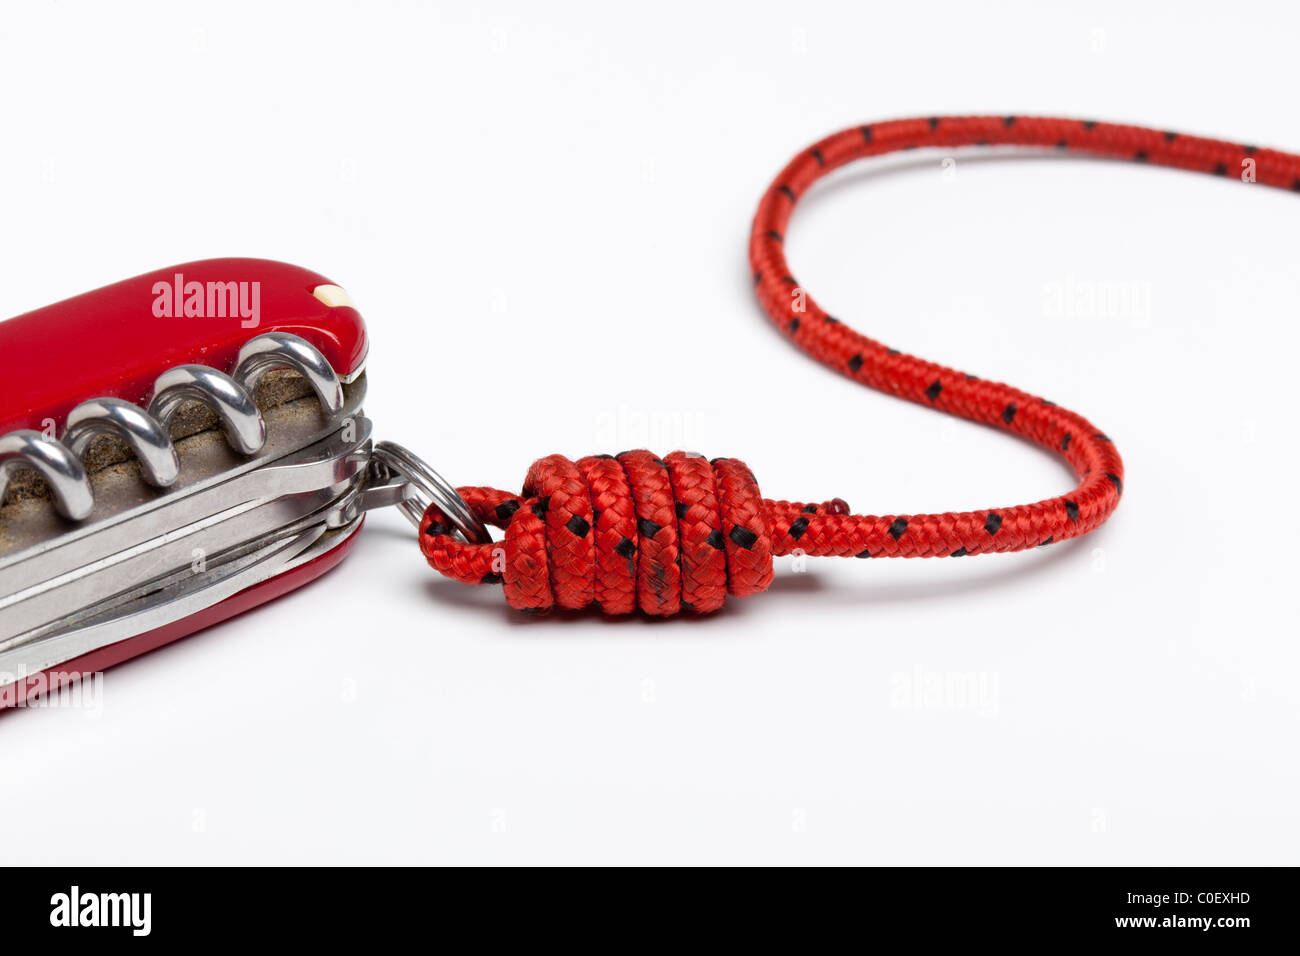 Old Swiss Army Knife, attached to a cord using a half blood knot - Stock Image